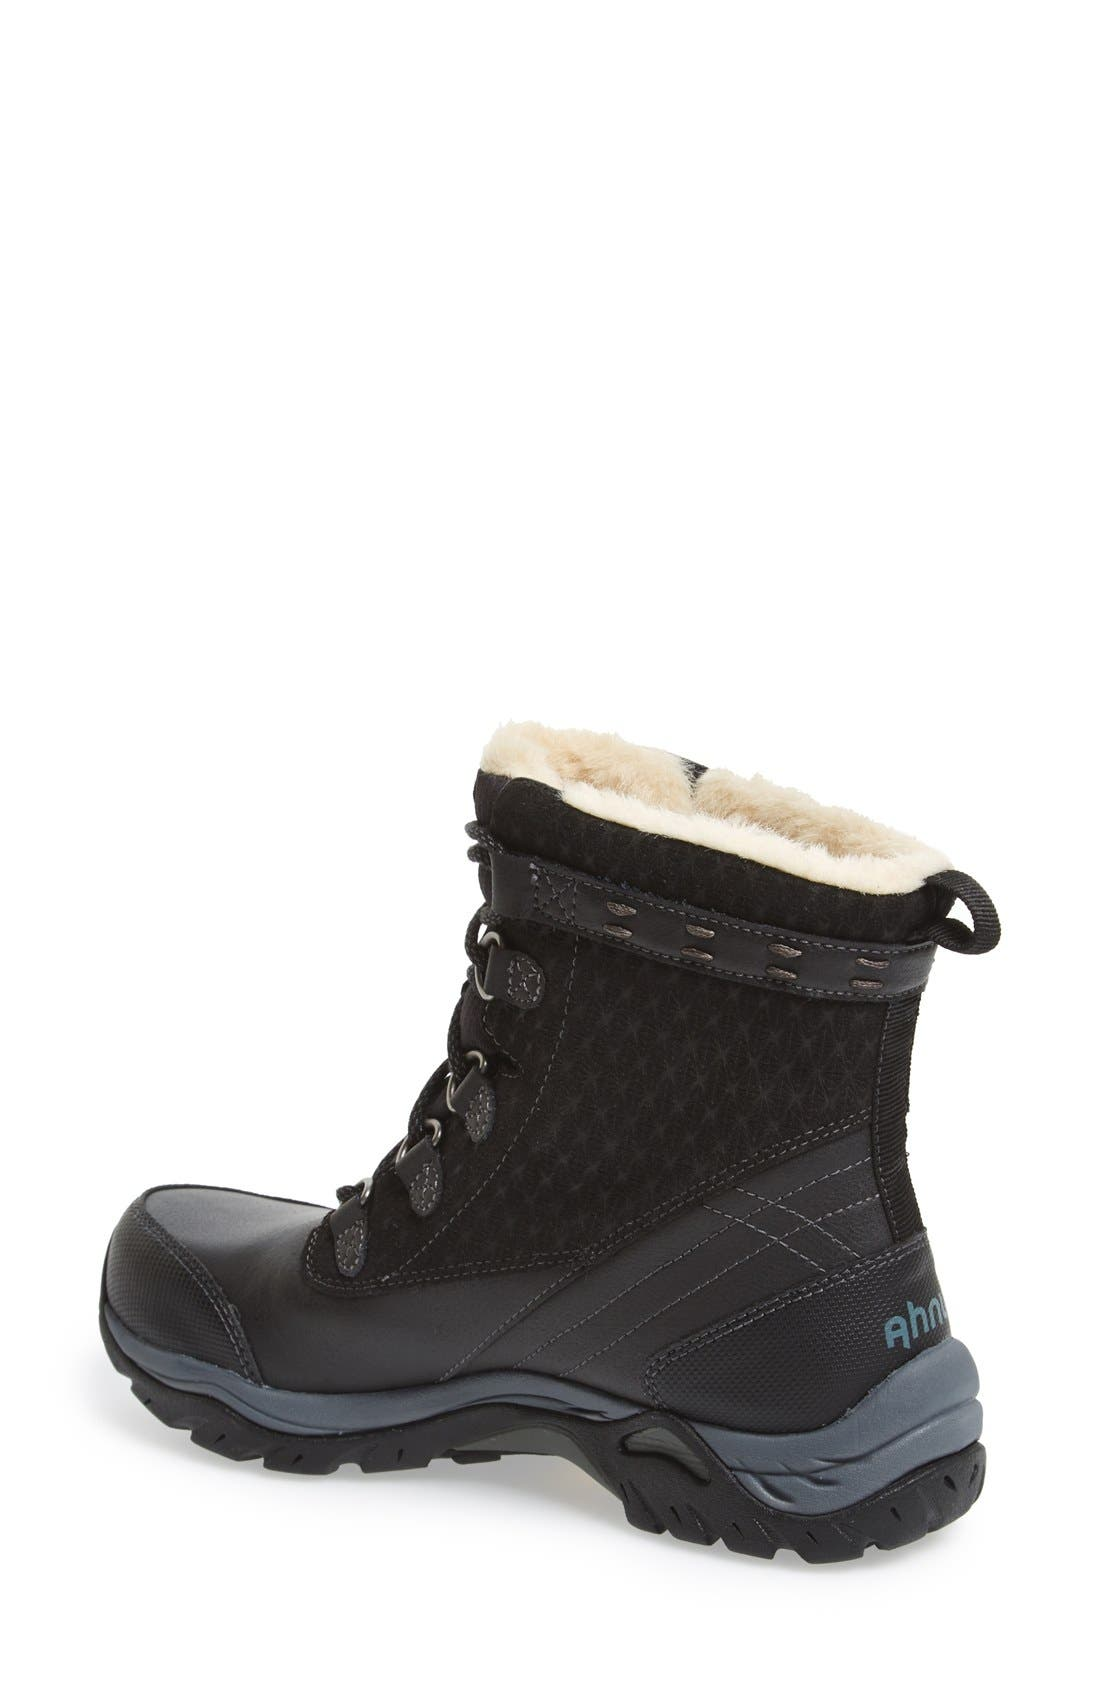 'Twain Harte' Insulated Waterproof Boot,                             Alternate thumbnail 3, color,                             001